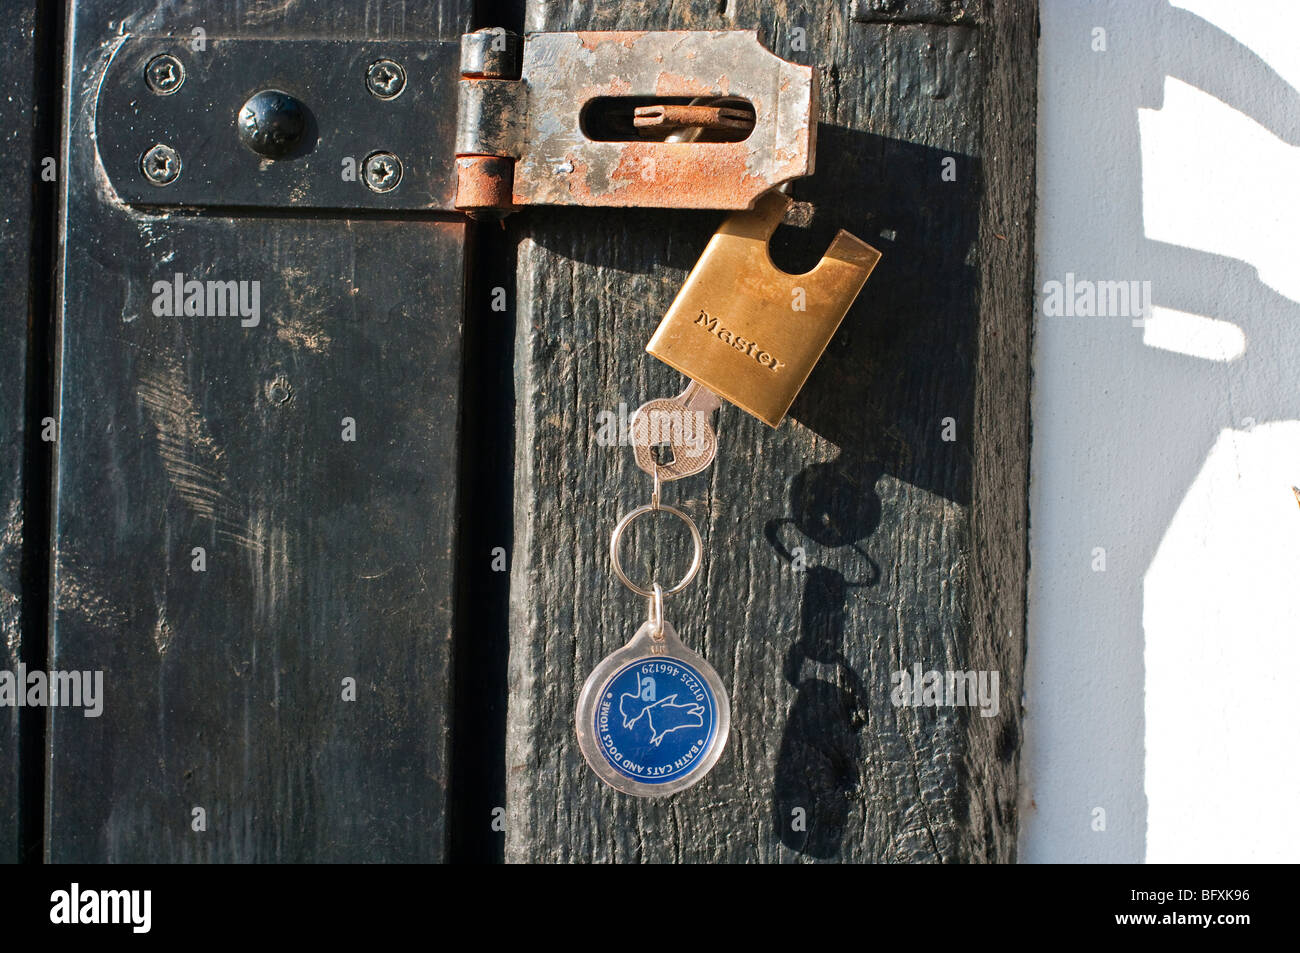 Unlocked padlock with key present inviting theft if left unattended - Stock Image